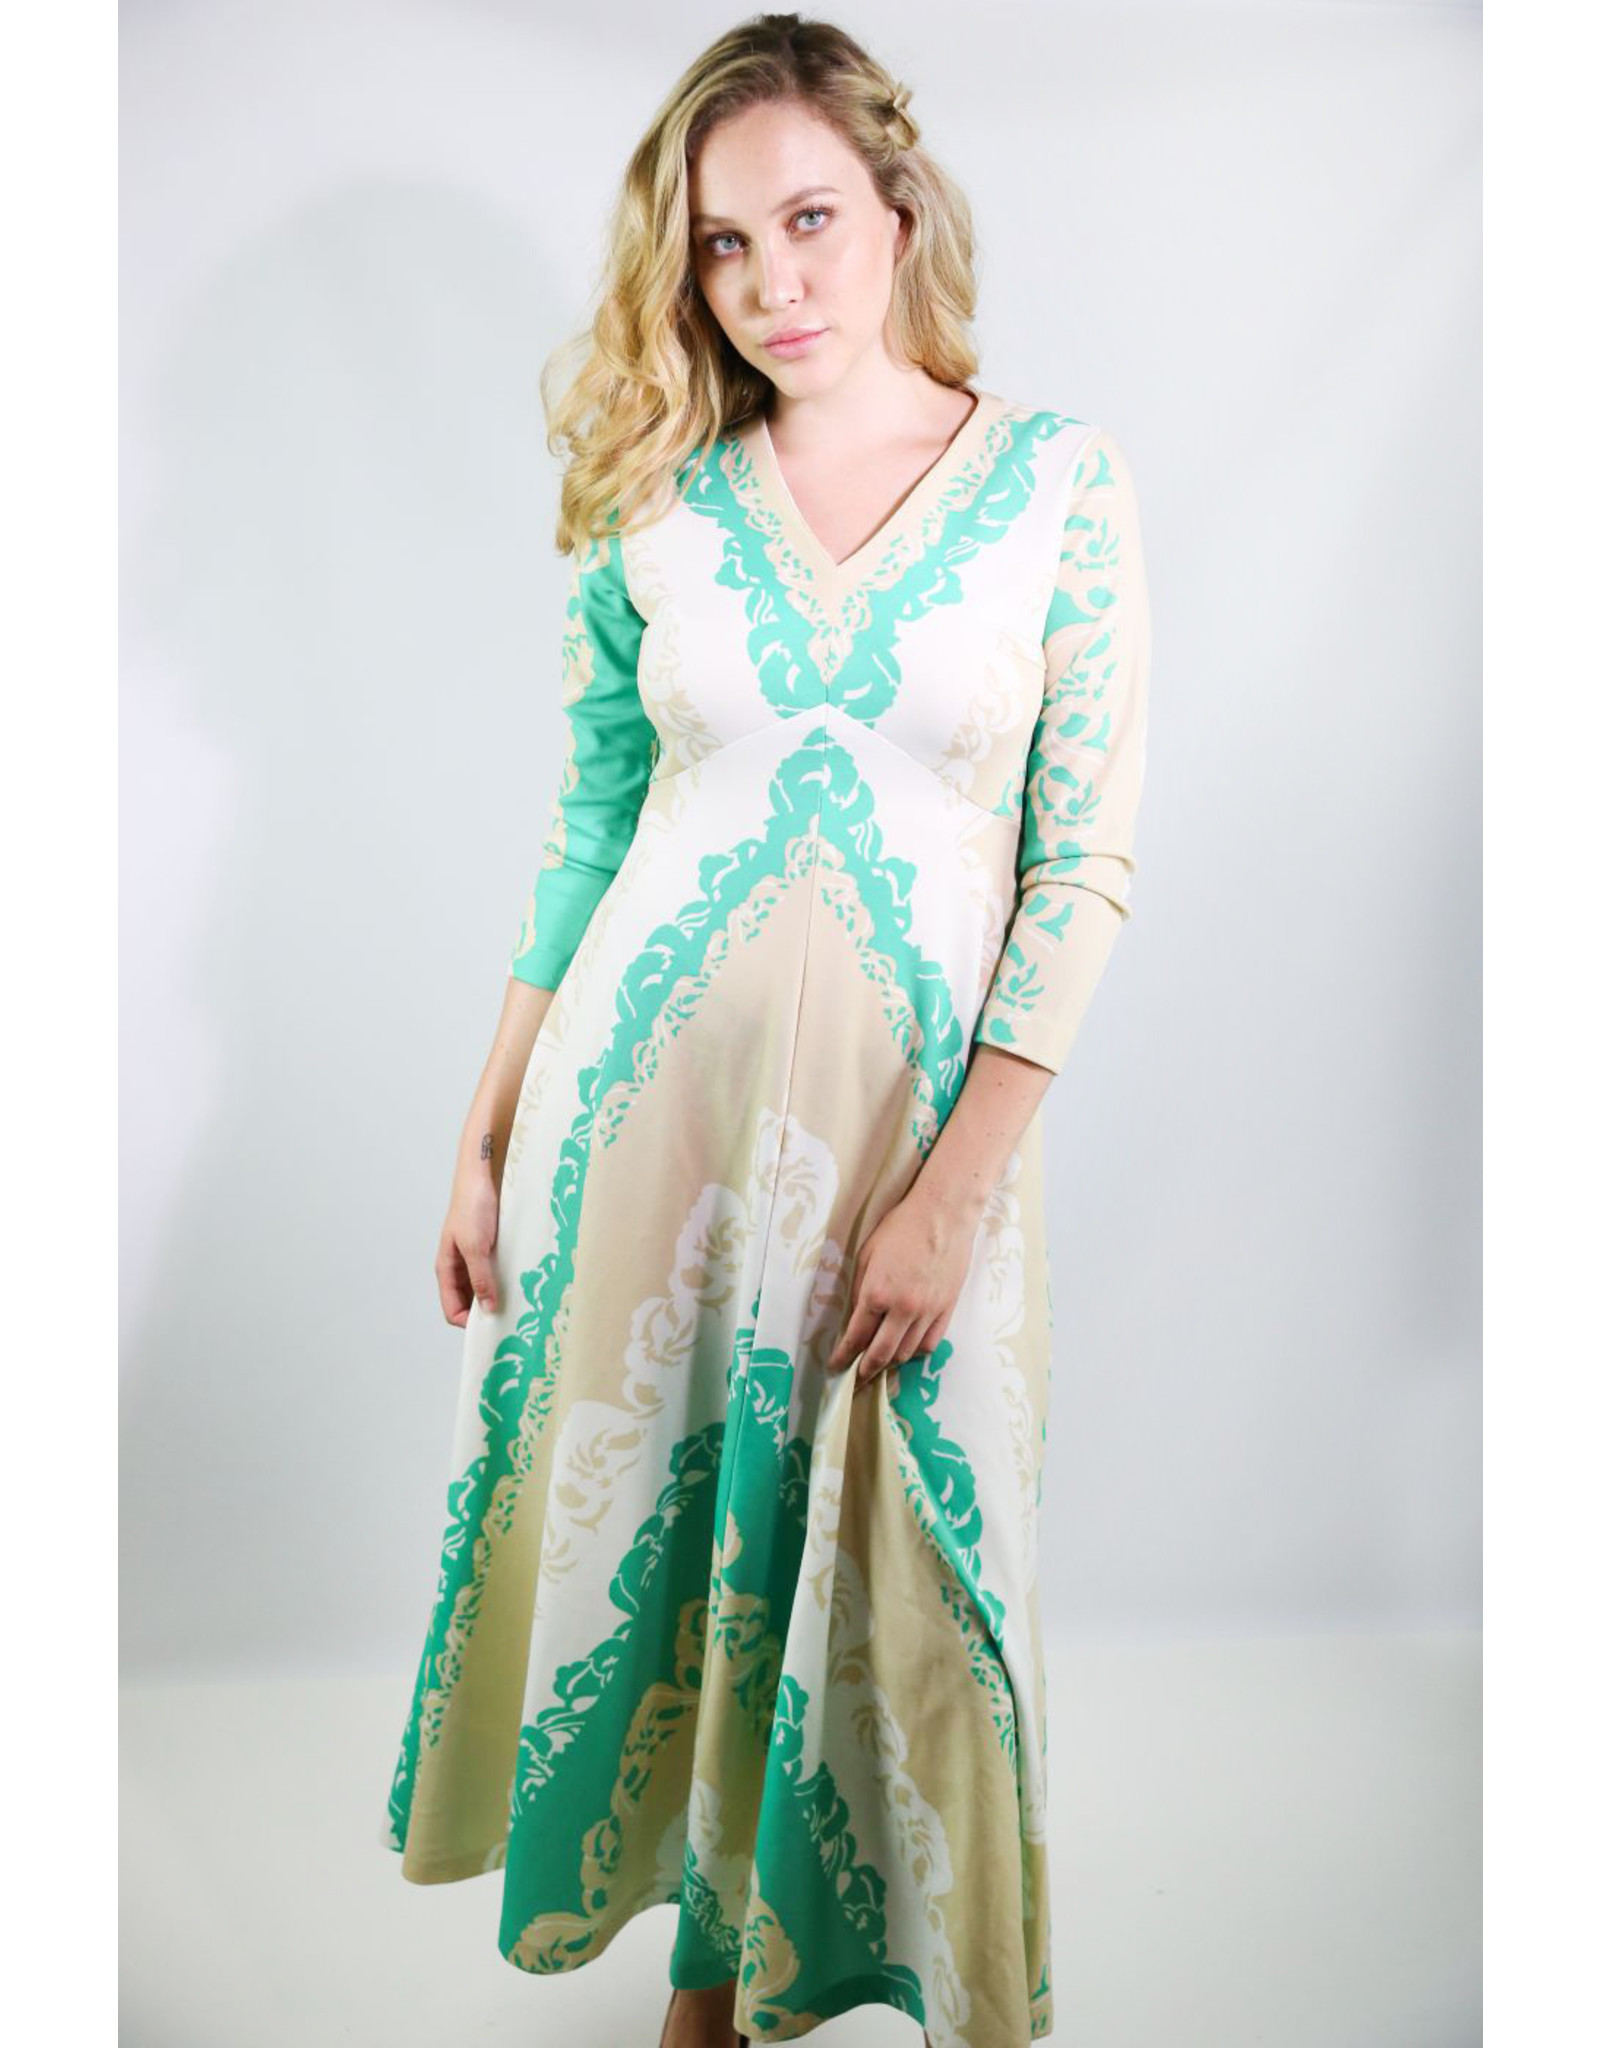 1970's Tan, Green, & White Polynesian Print Maxi Dress